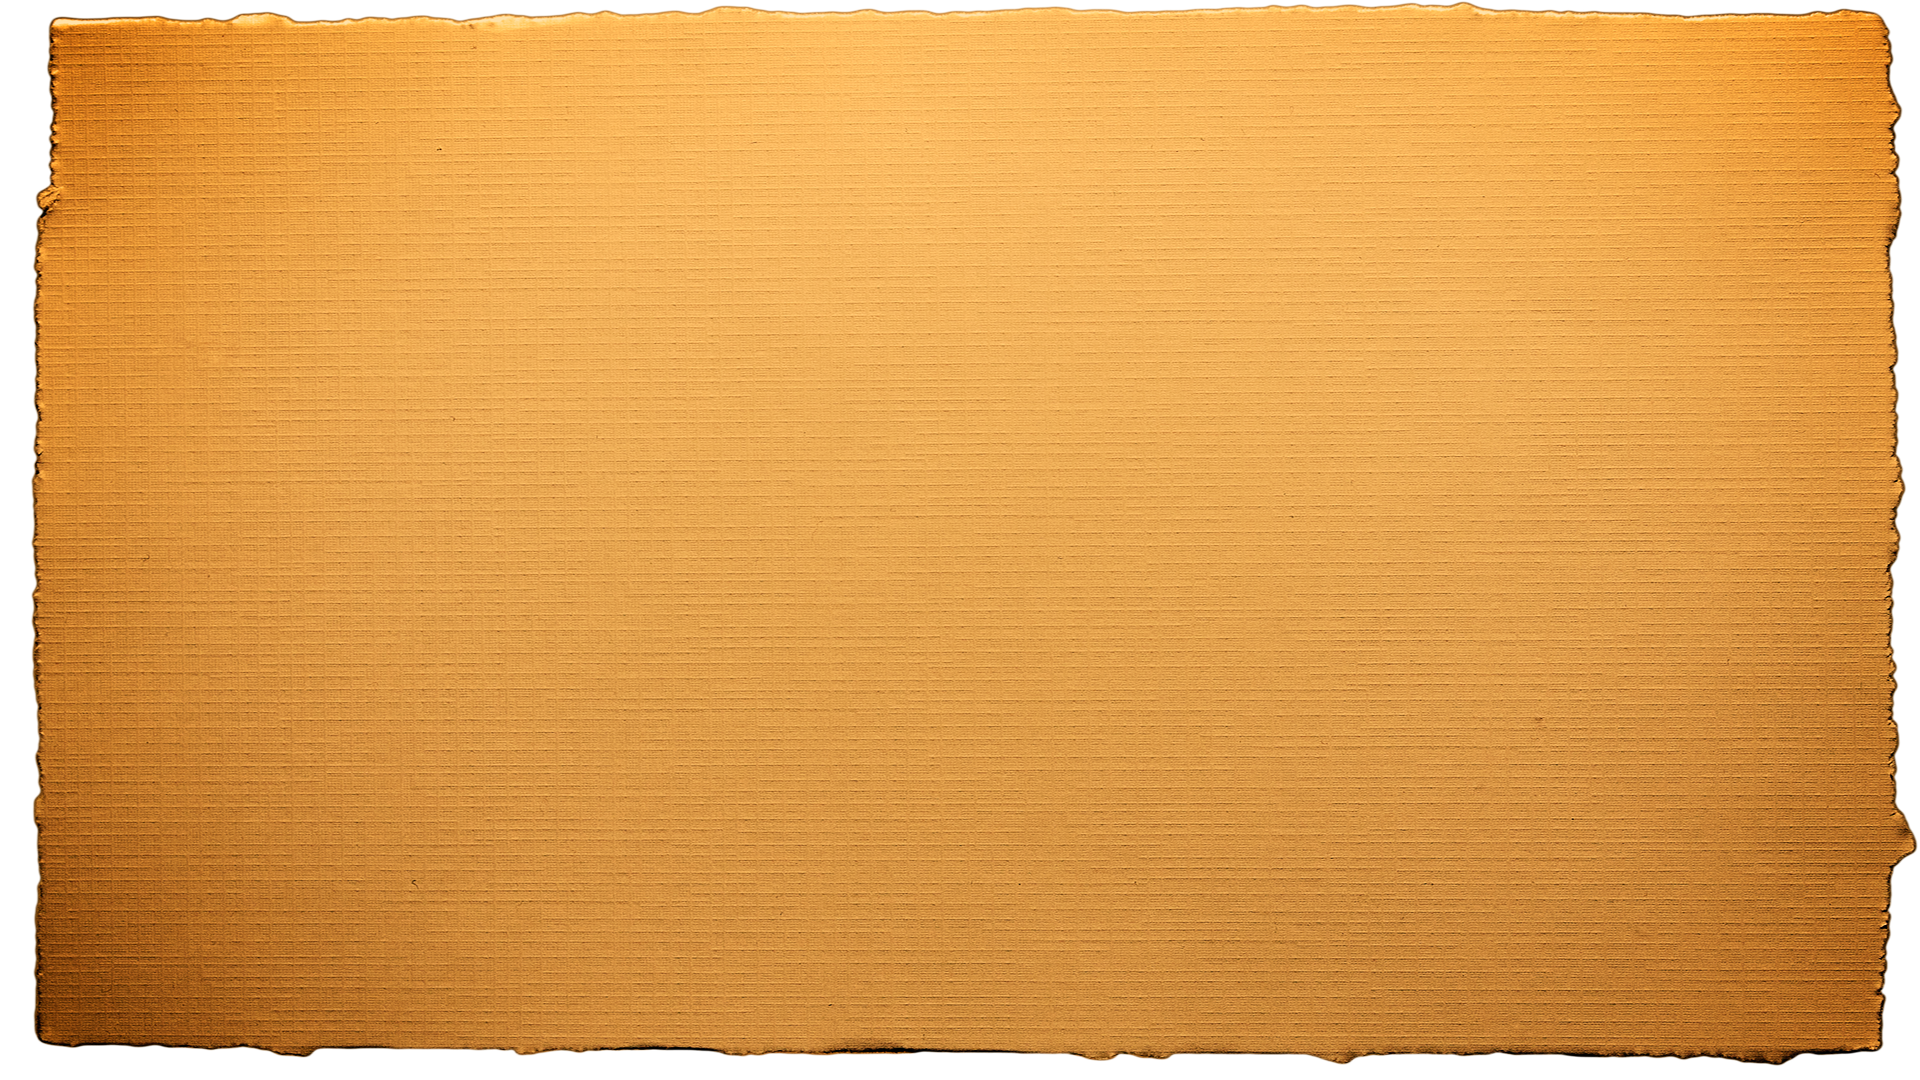 paper hd png transparent paper hd images. | pluspng